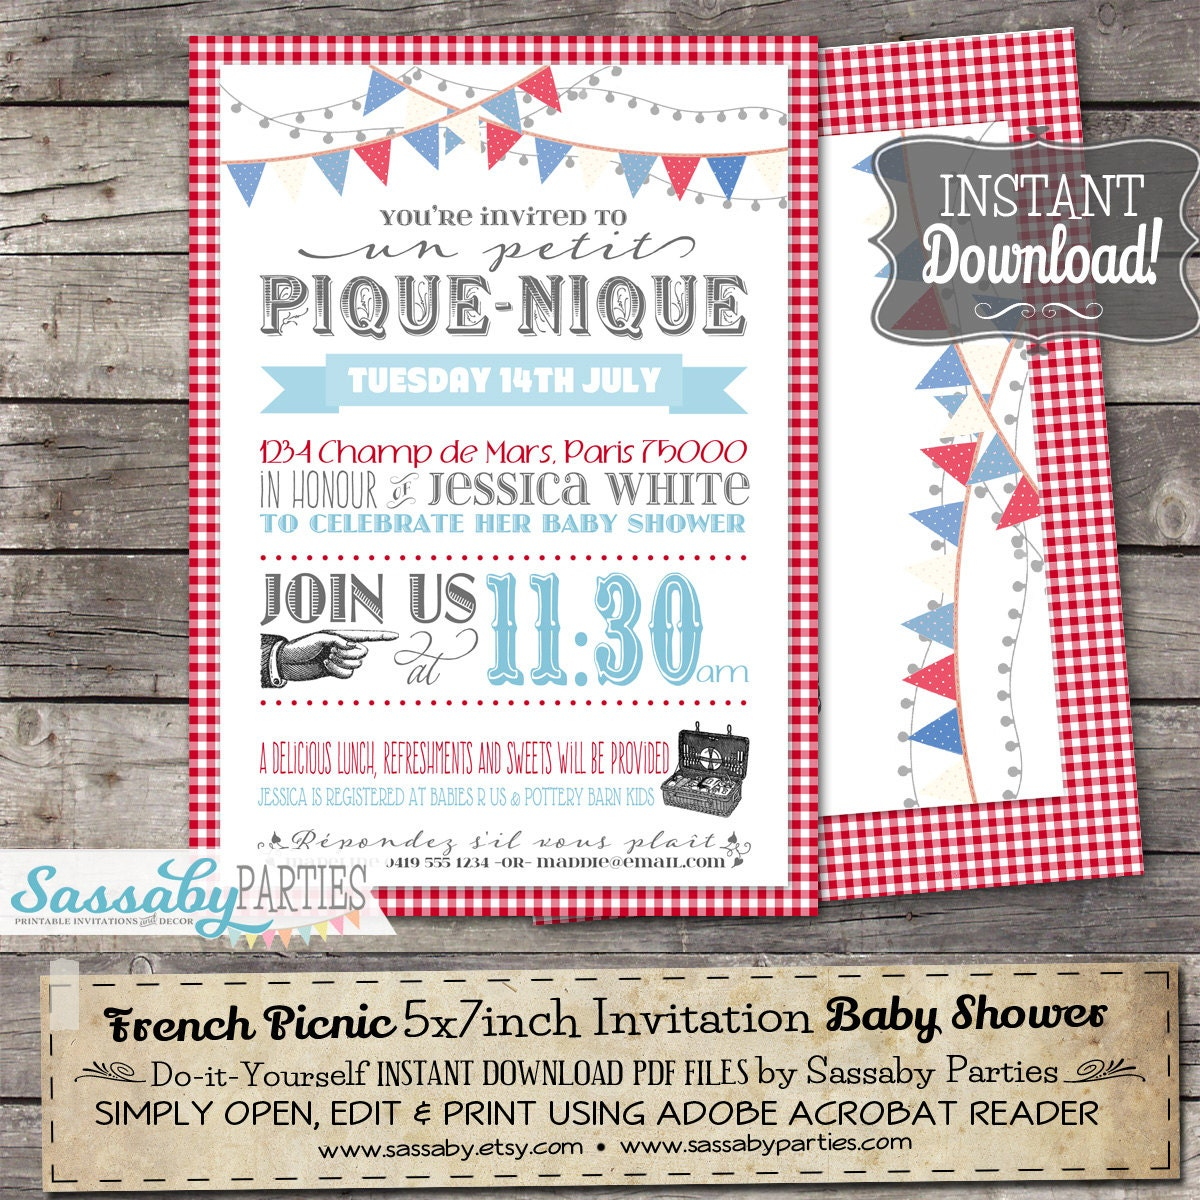 French Picnic Invitation INSTANT DOWNLOAD Editable